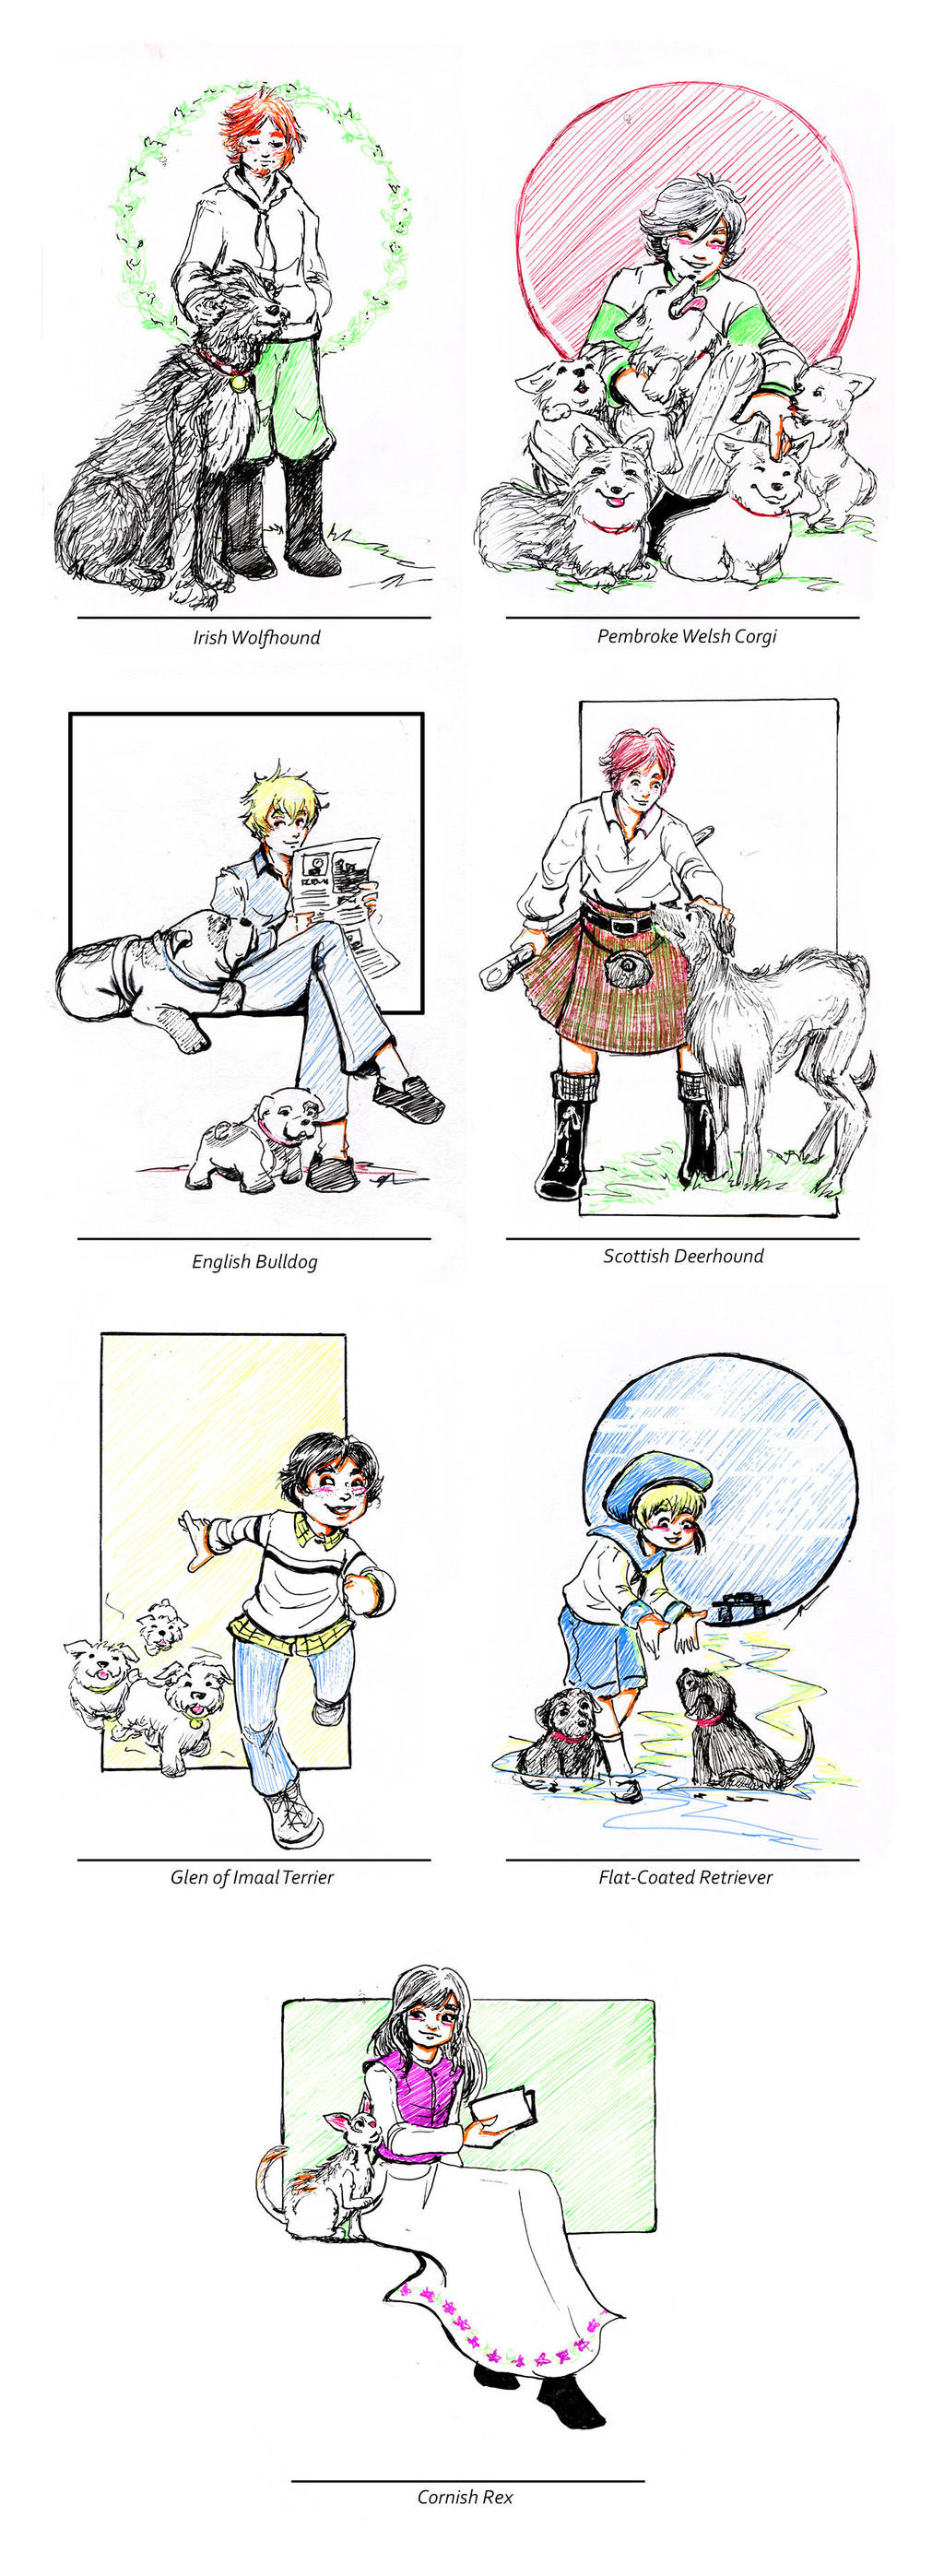 British Isles and Dogs - plus one cat by GalacticDustBunnies